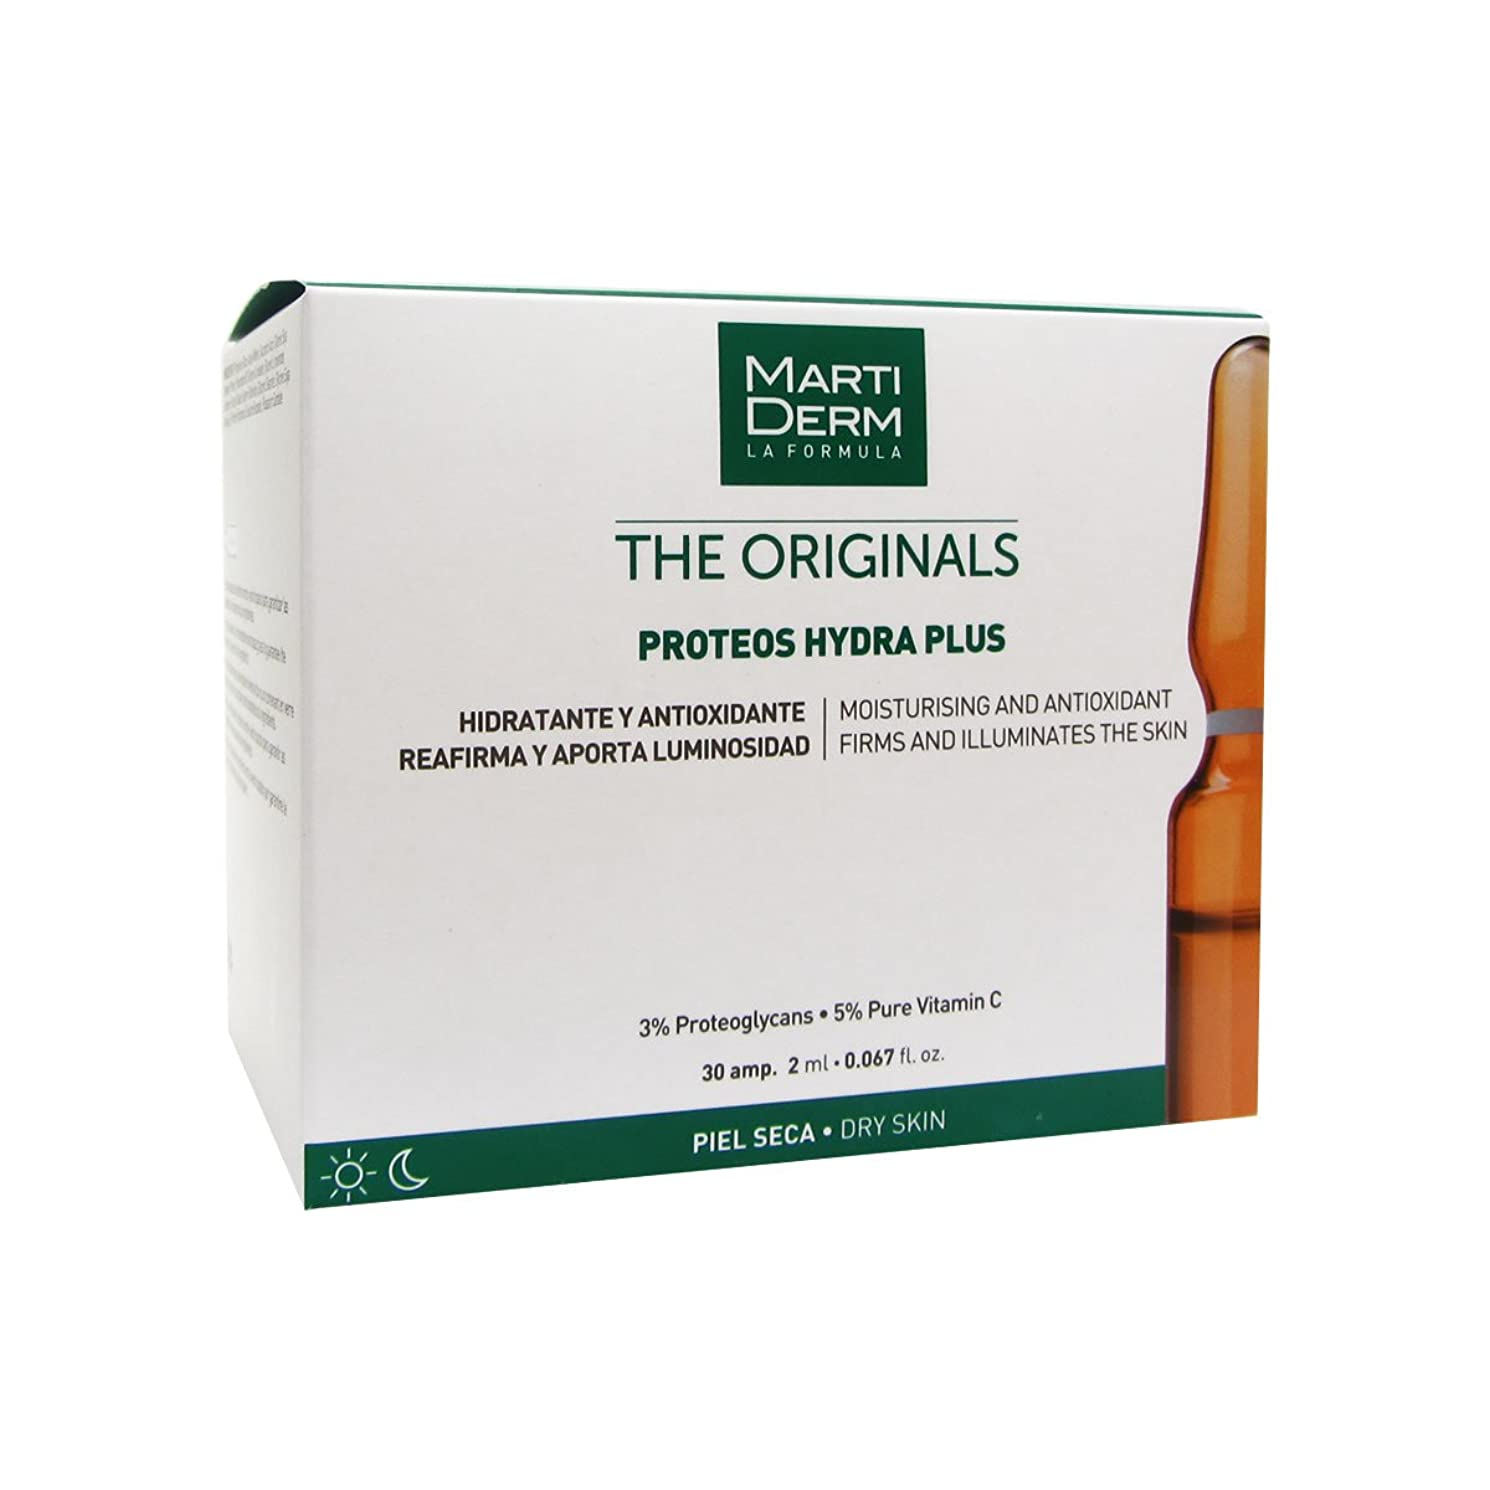 アルミニウム連続的月曜Martiderm The Originals Proteos Hydra Plus Ampoules 30amp. [並行輸入品]